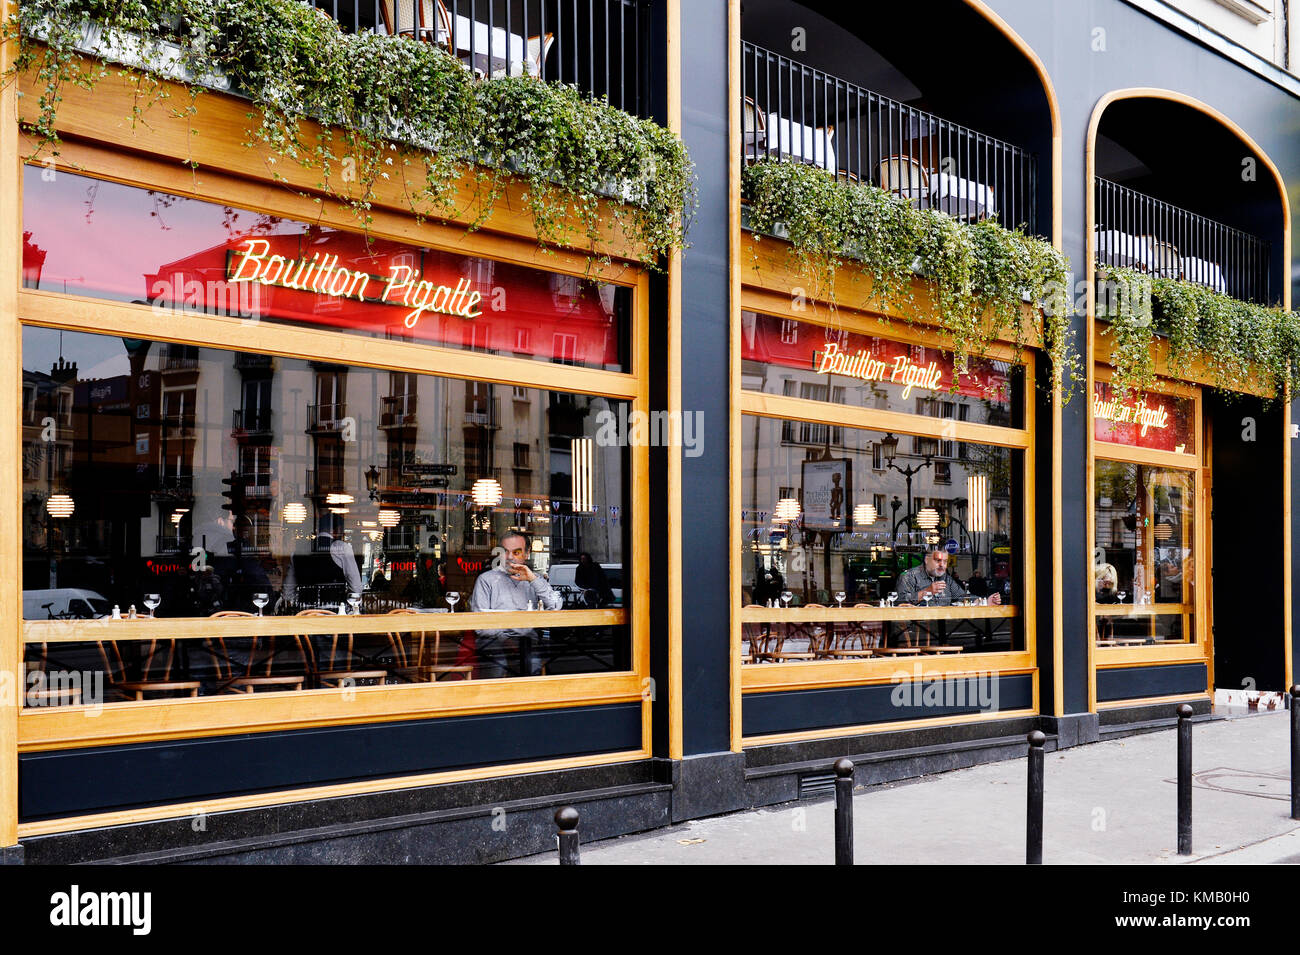 Bistrot paris stock photos bistrot paris stock images for Restaurant miroir paris 18